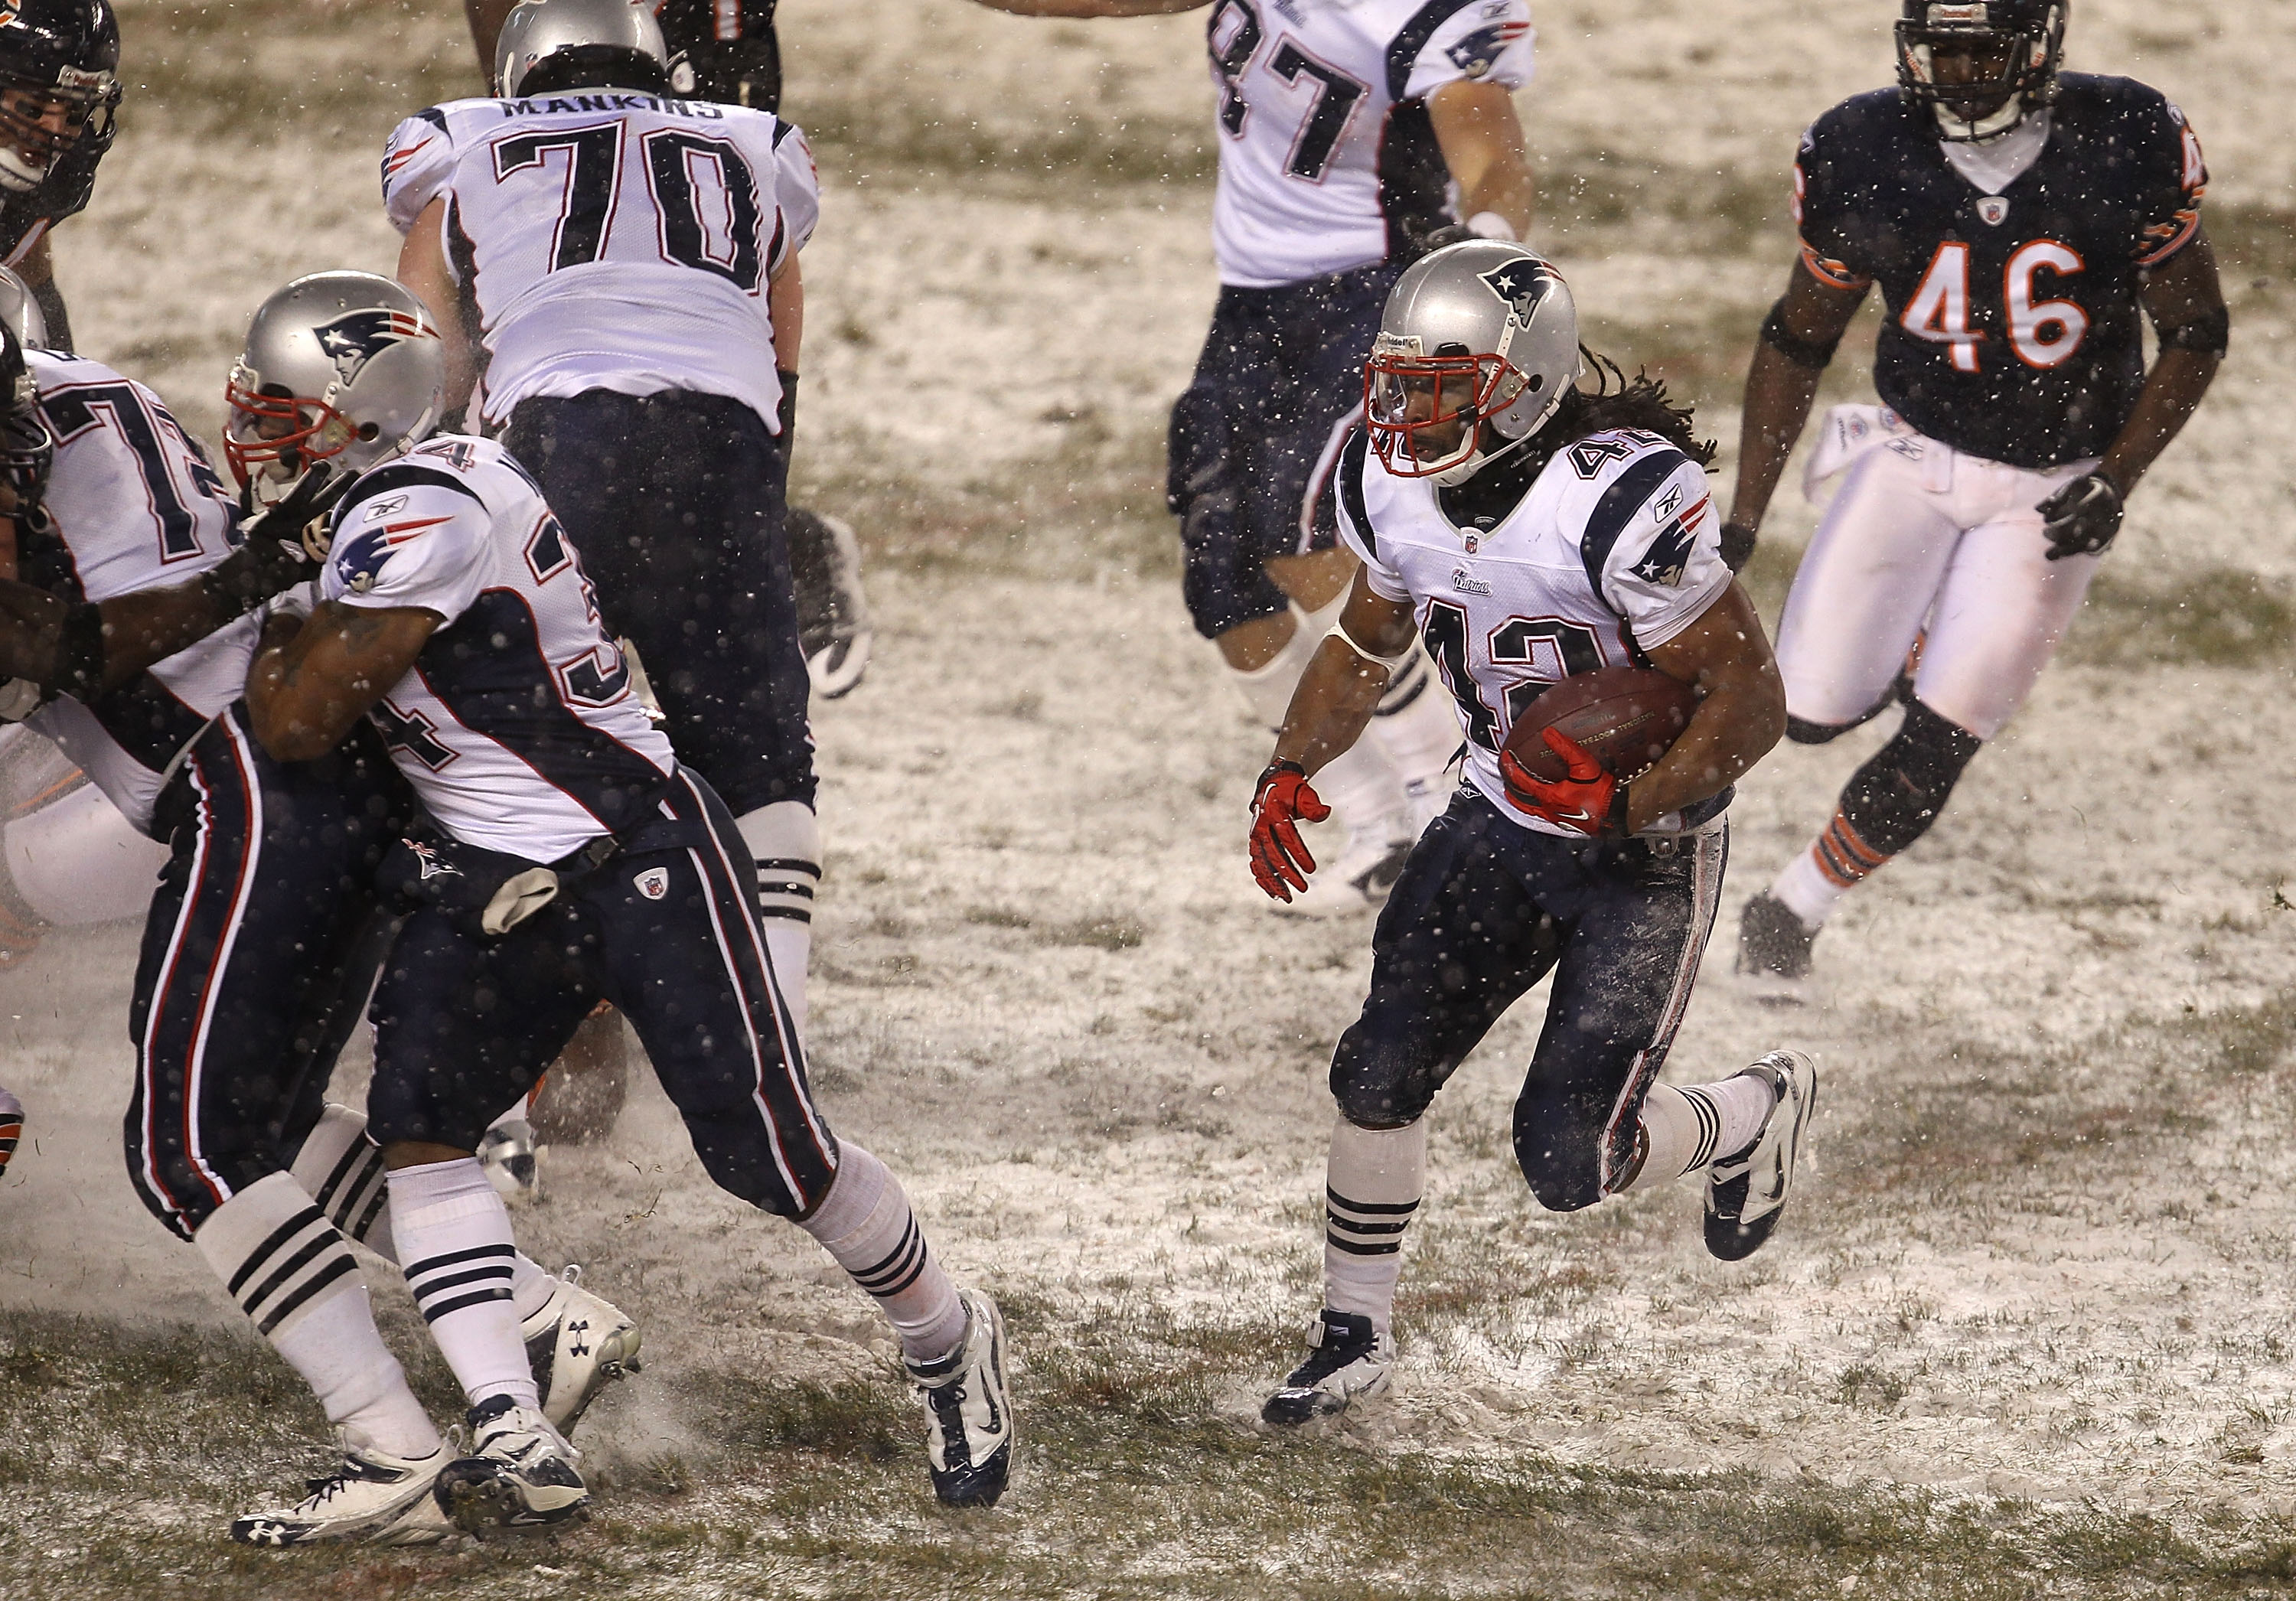 CHICAGO, IL - DECEMBER 12: Ben-Jarvus Green-Ellis #42 of the New England Patriots looks for running room pursued by Chris Harris #46 of the Chicago Bears at Soldier Field on December 12, 2010 in Chicago, Illinois. The Patriots defeated the Bears 36-7. (Ph